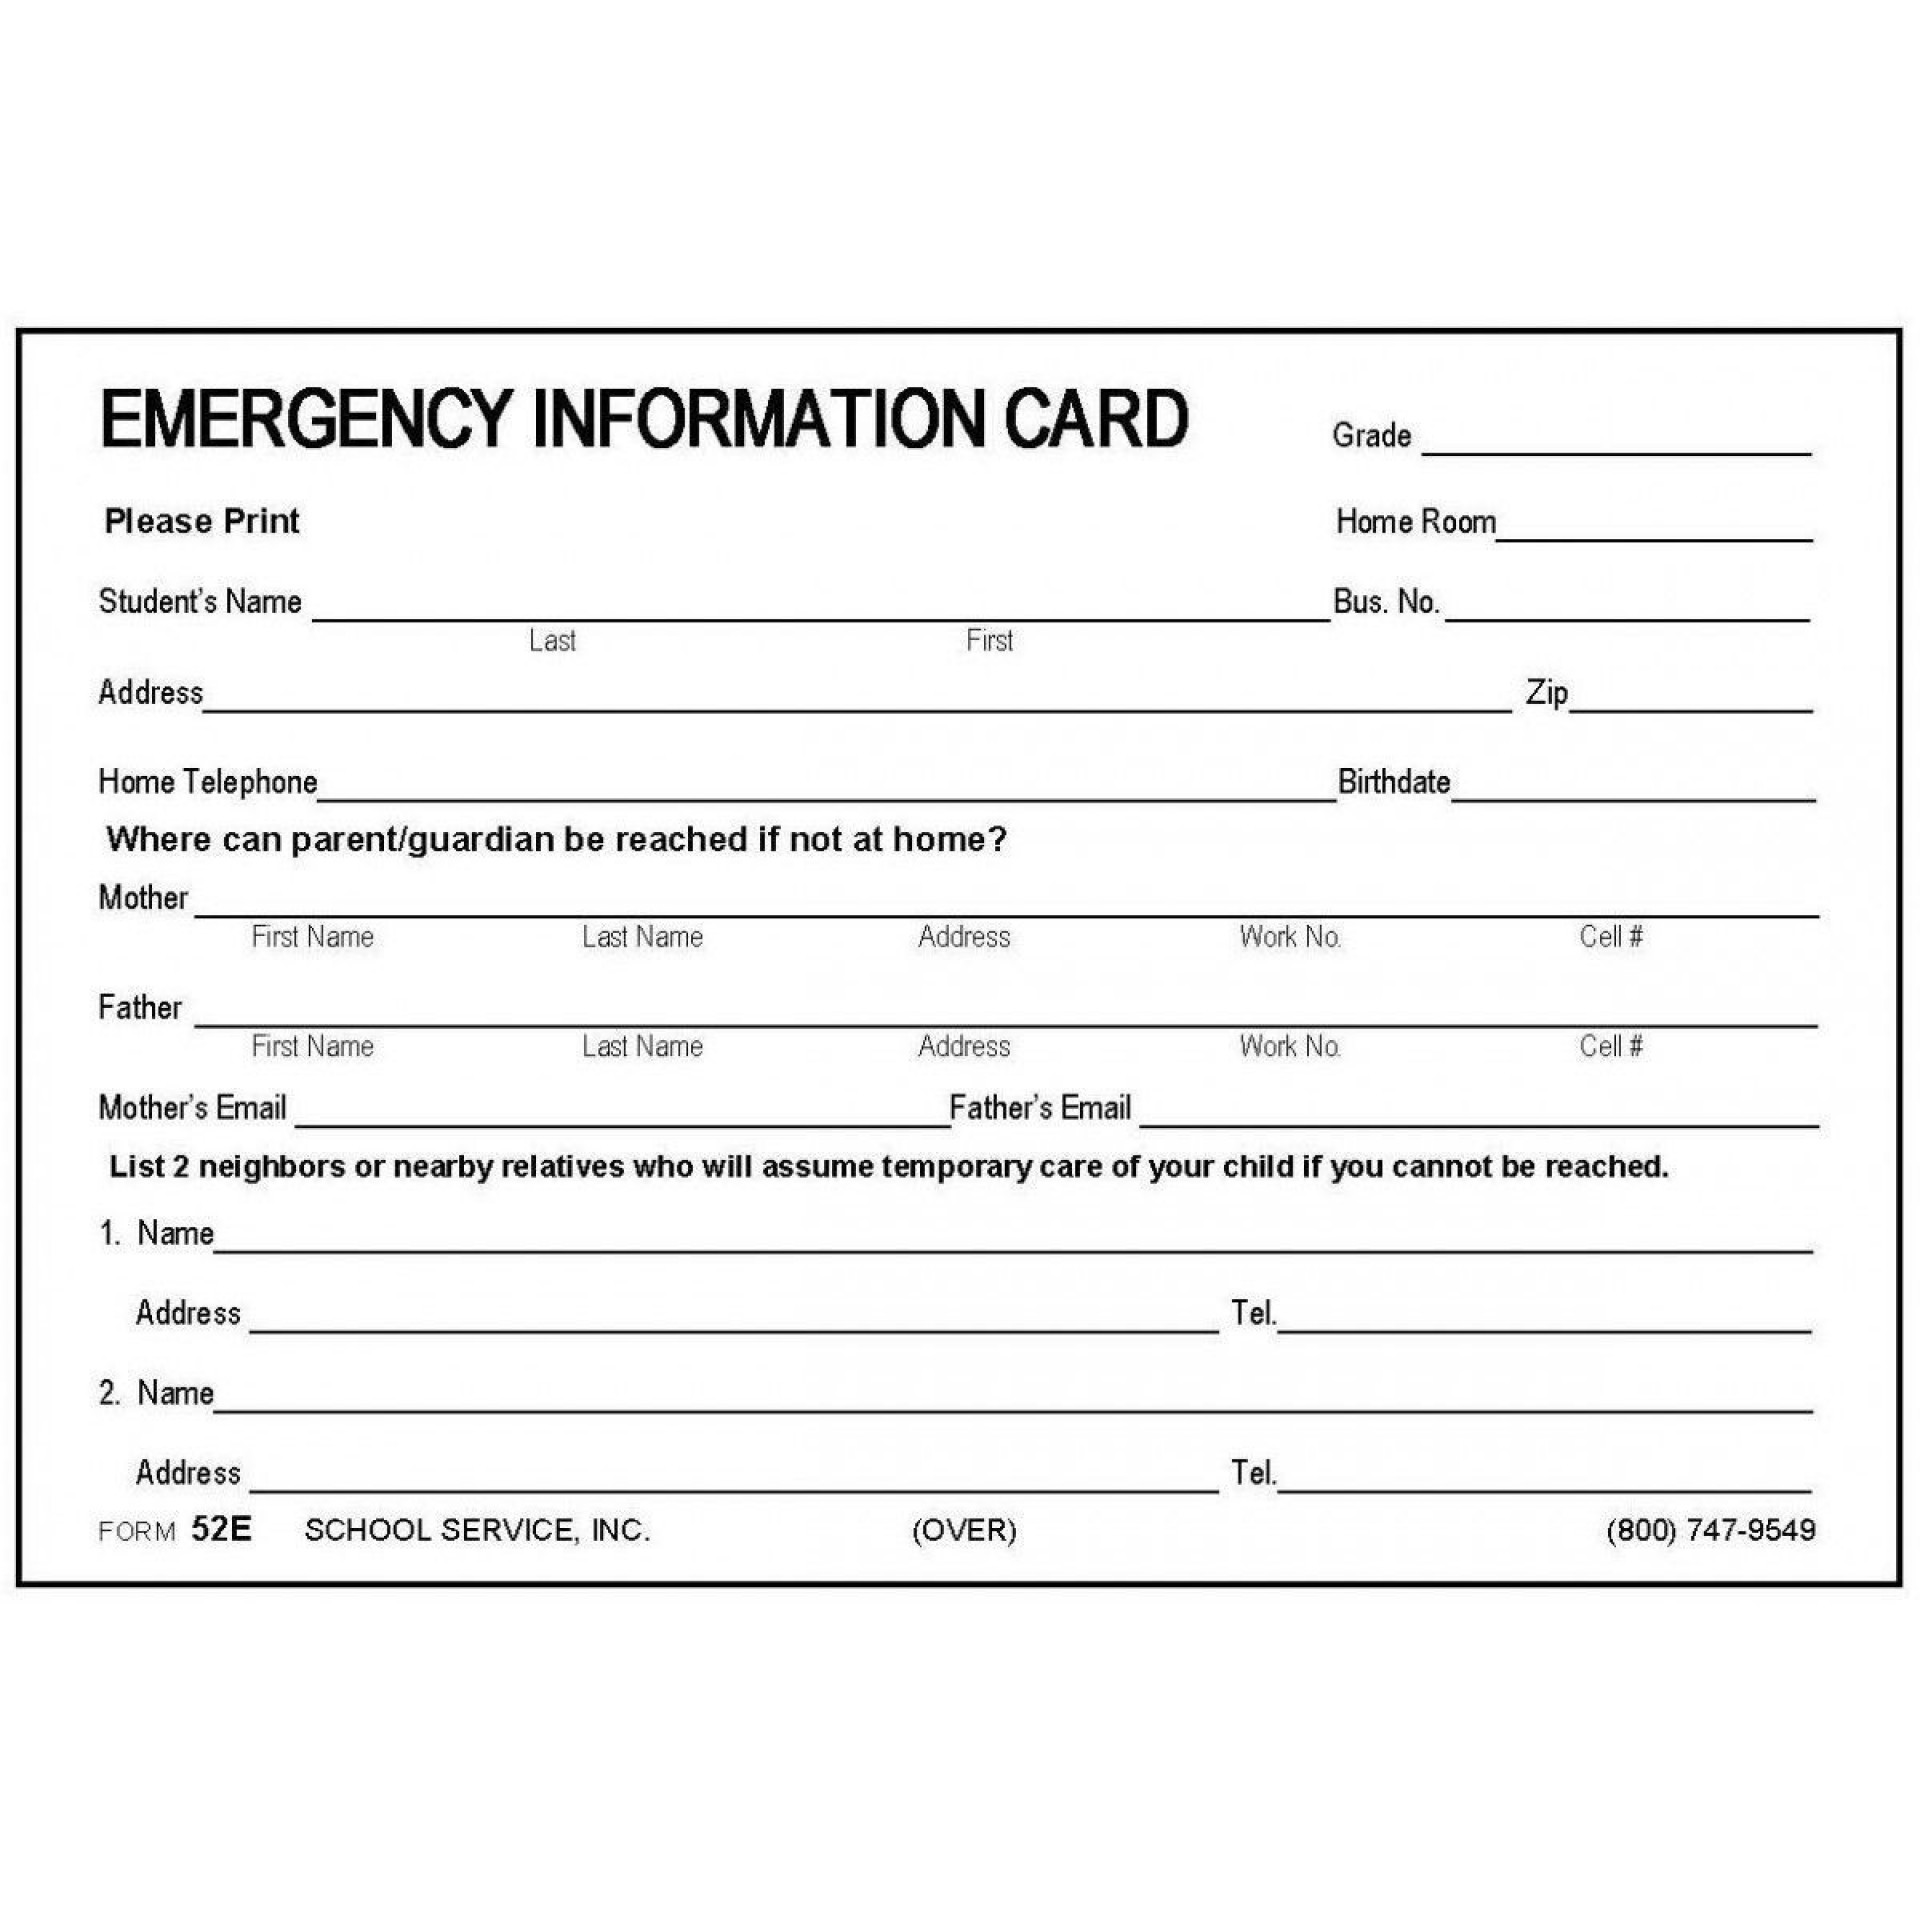 000 Fascinating Emergency Information Card Template High Def  Contact Free For Child1920